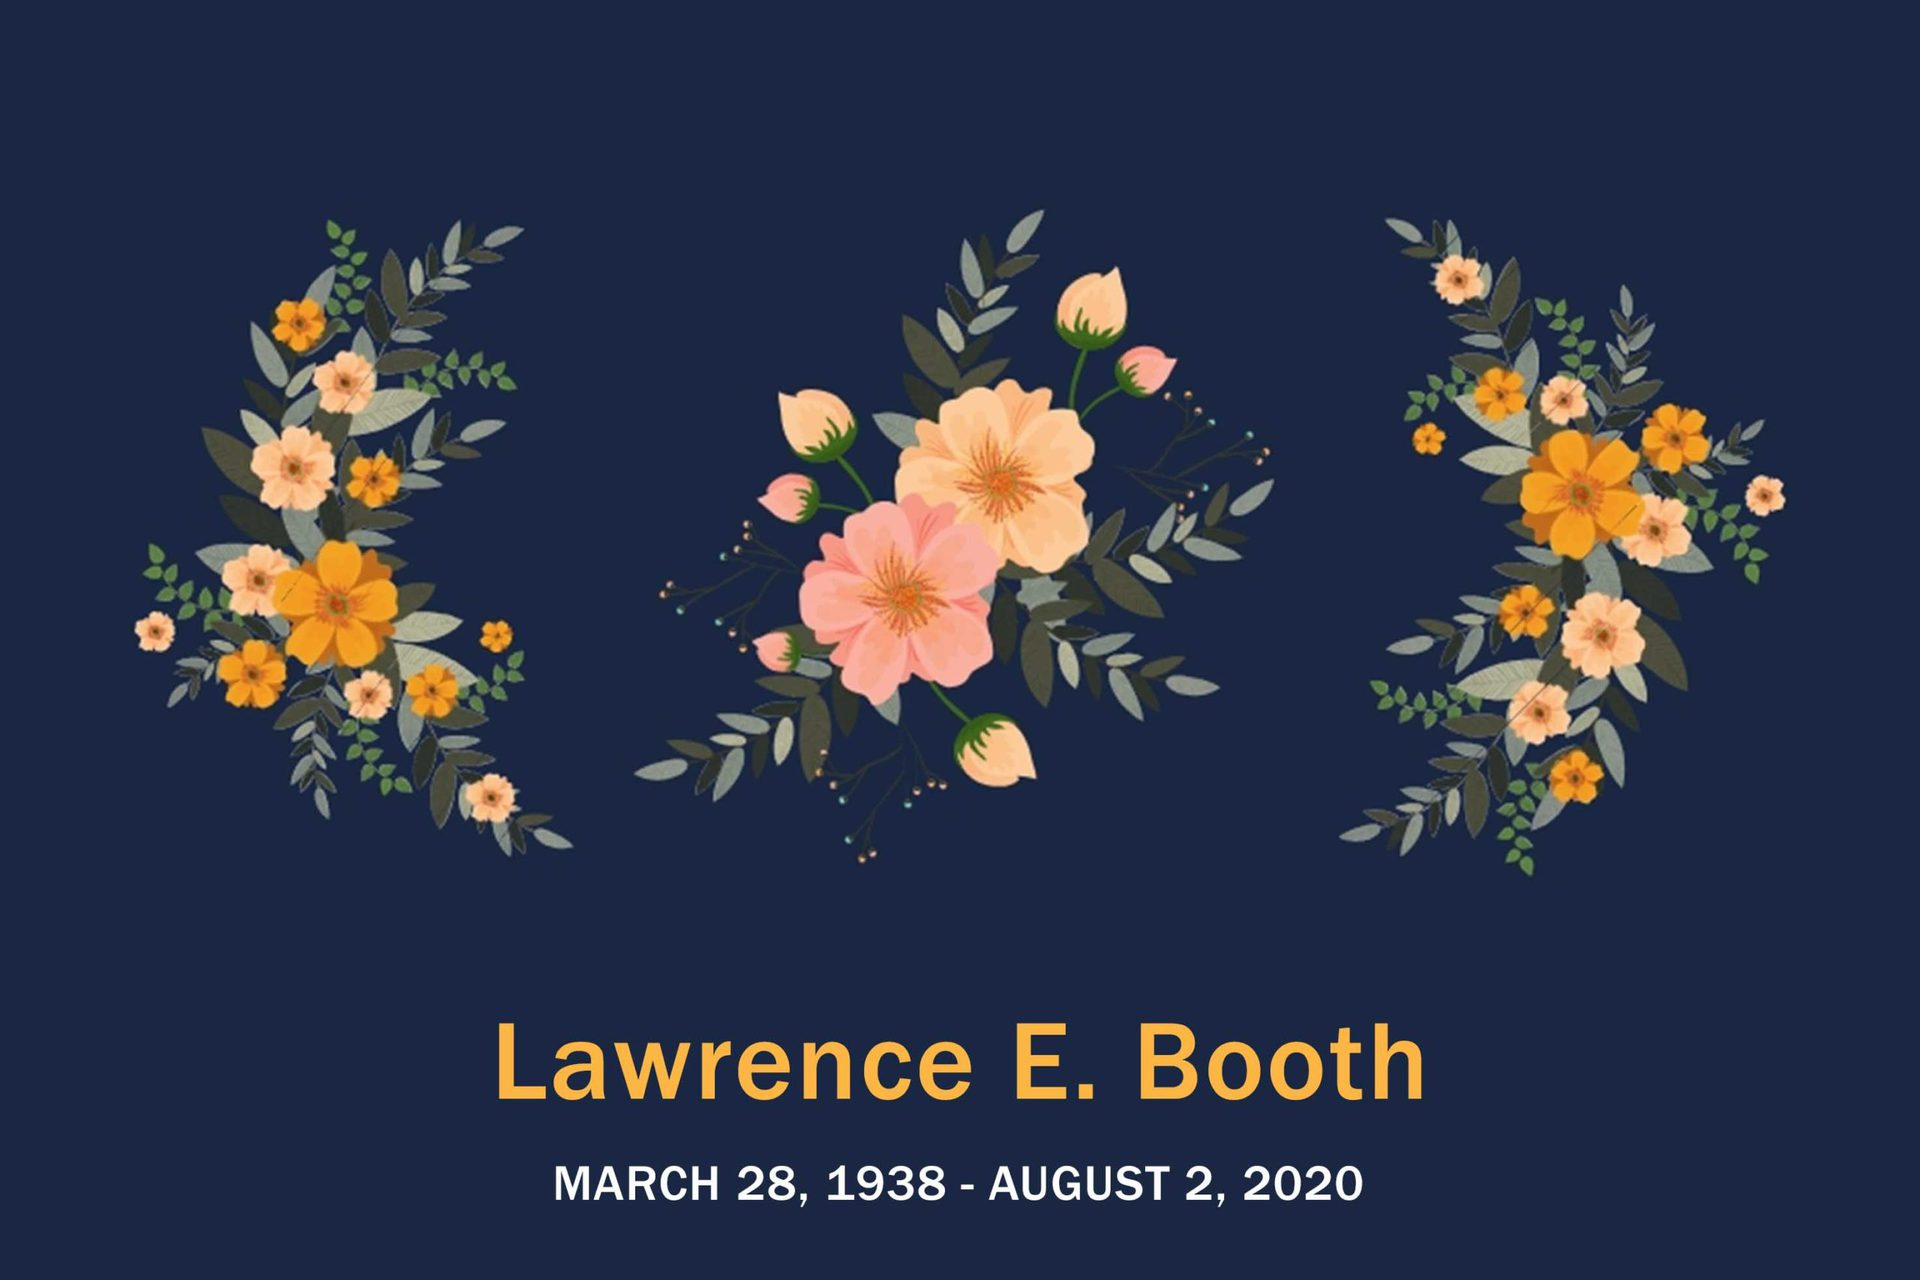 Lawrence E. Booth